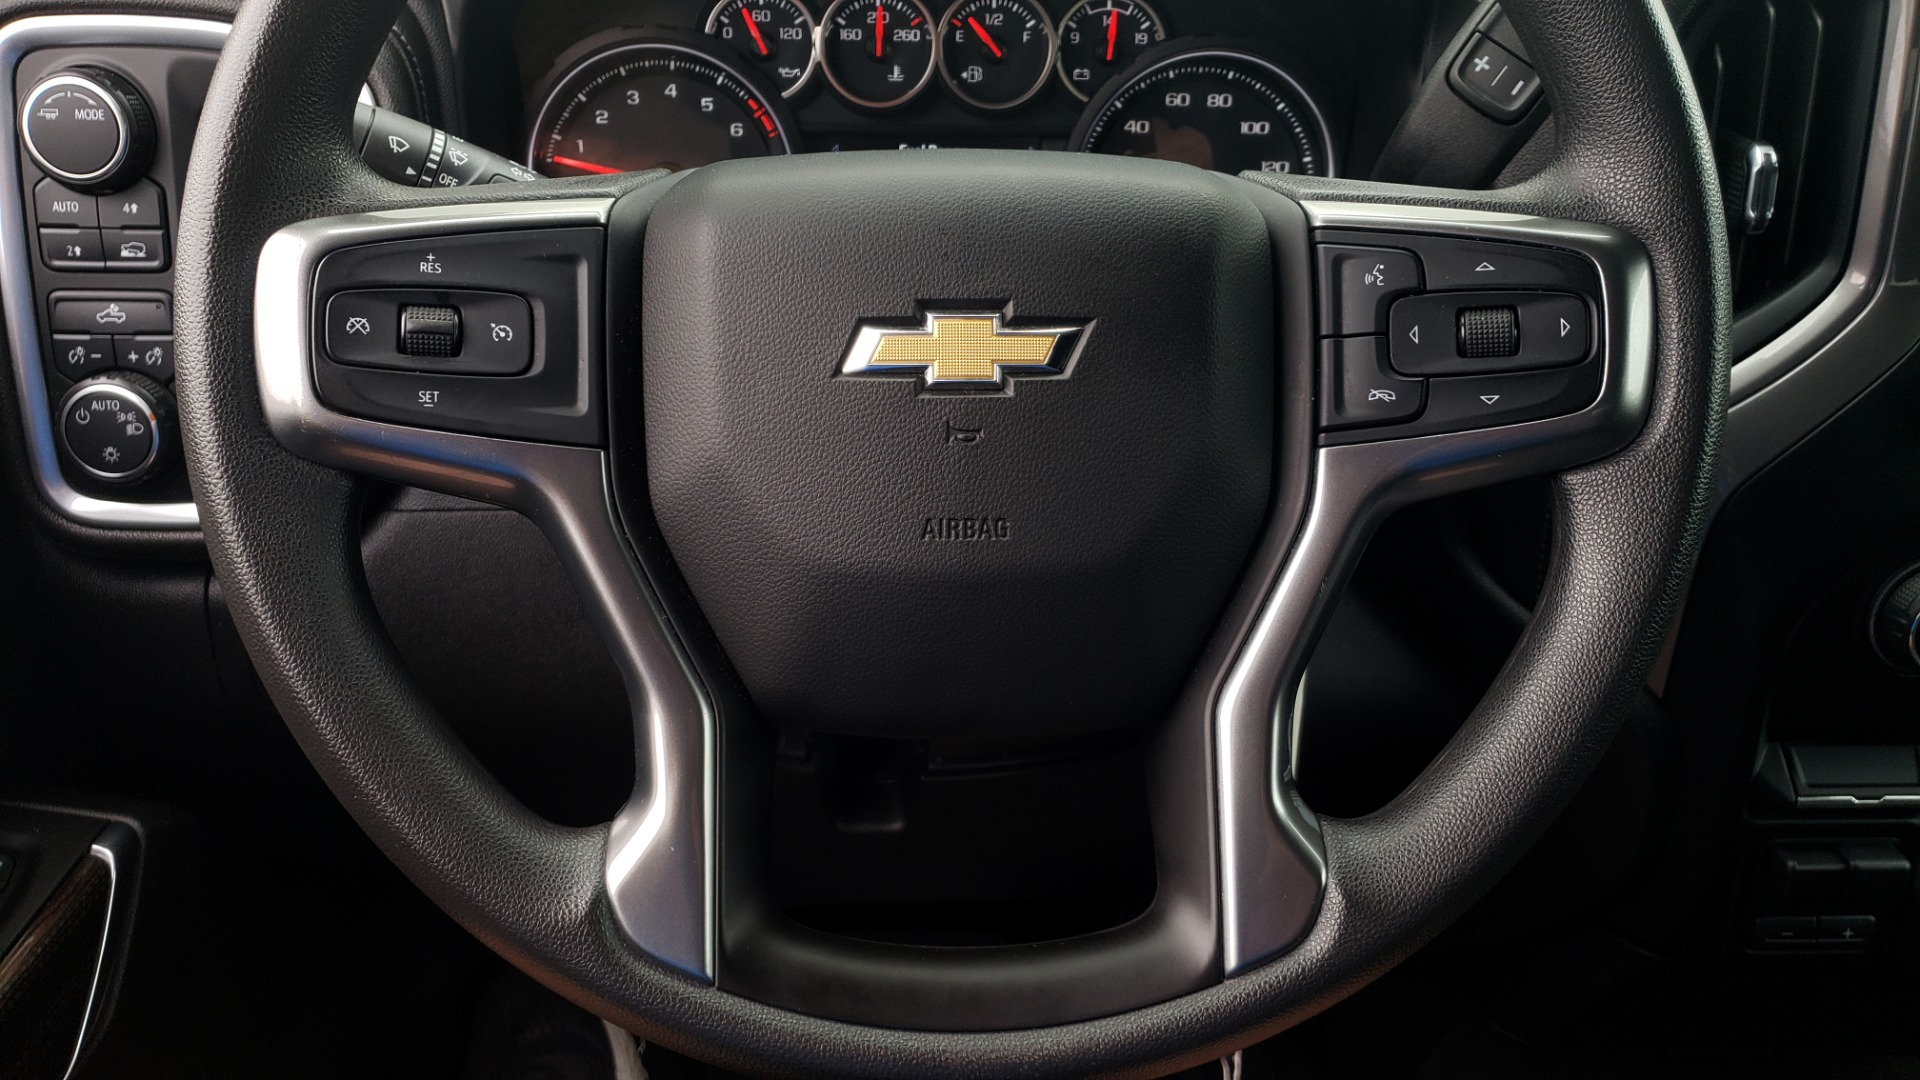 Used 2020 Chevrolet SILVERADO 1500 LT 4WD DOUBLECAB 147 WB / 5.3L V8 / BEDLINER / REARVIEW for sale $41,995 at Formula Imports in Charlotte NC 28227 39